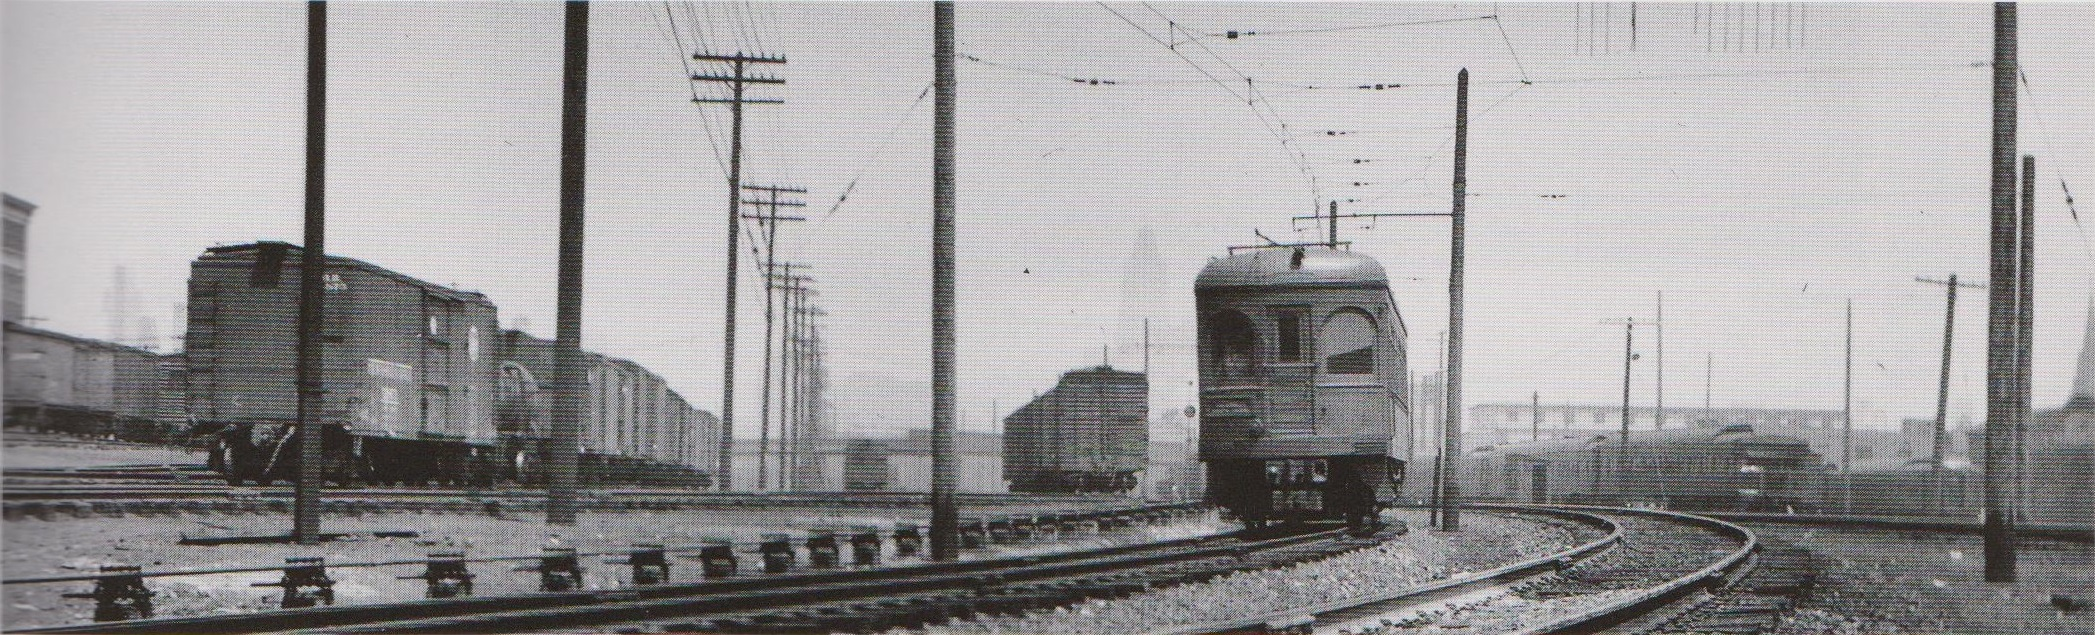 """Baltimore & Annapolis Car leaving Camden Station heading for Annapolis. The view is north from Ostend Street. The Bank of America Building, formerly the Baltimore Trust Company Building, can be seen in the background. Baltimore, Maryland Date: October 1936. Source: J.P. Shuman Photo from """"Baltimore Light Rail, Then & Now"""" by Herbert H. Harwood Jr."""